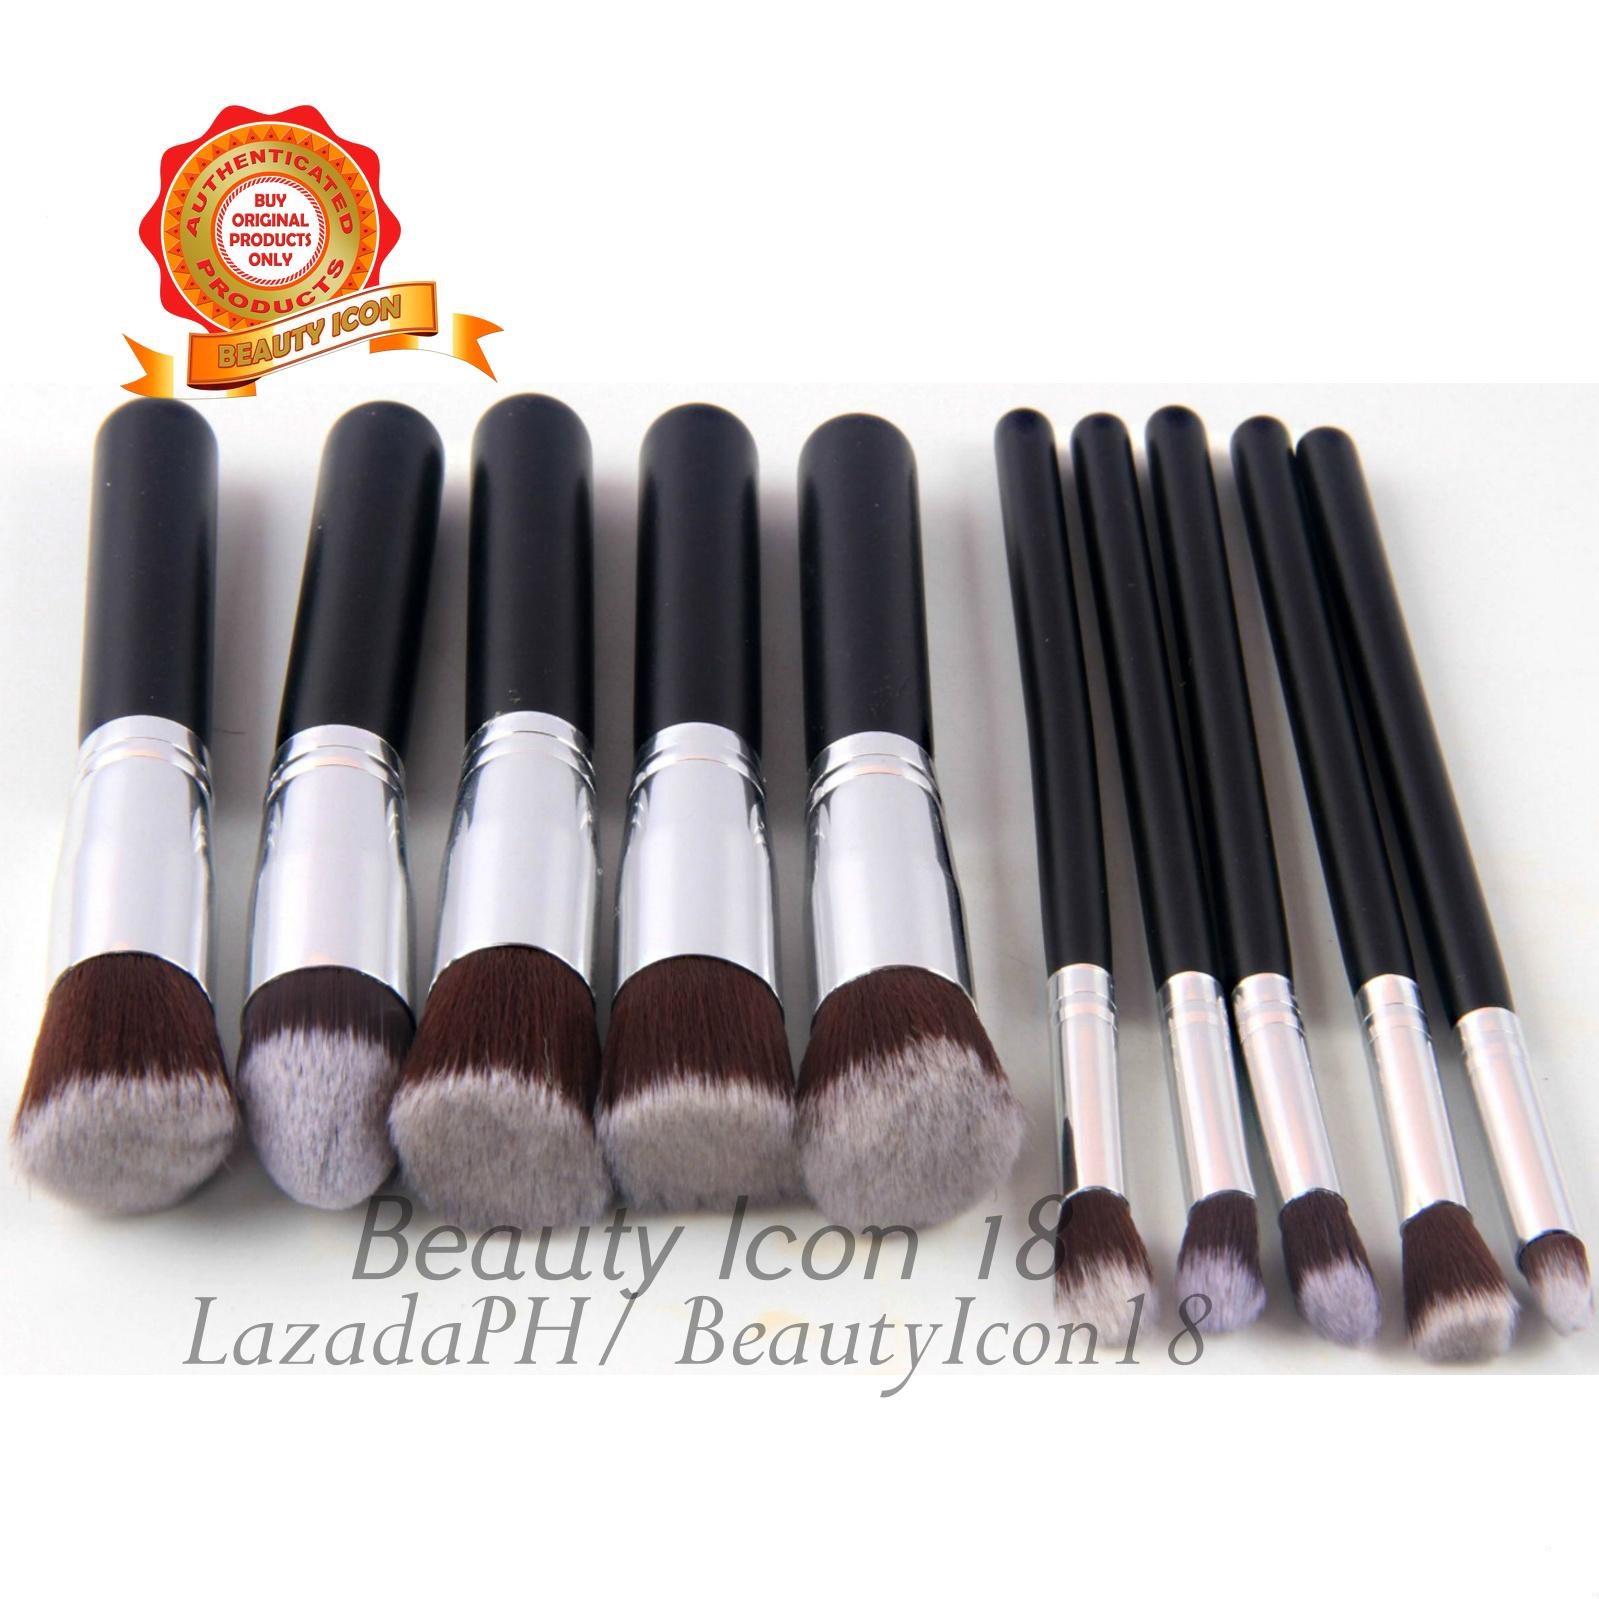 6434292a958 Makeup Brush brands - Applicator on sale, prices, set & reviews in ...